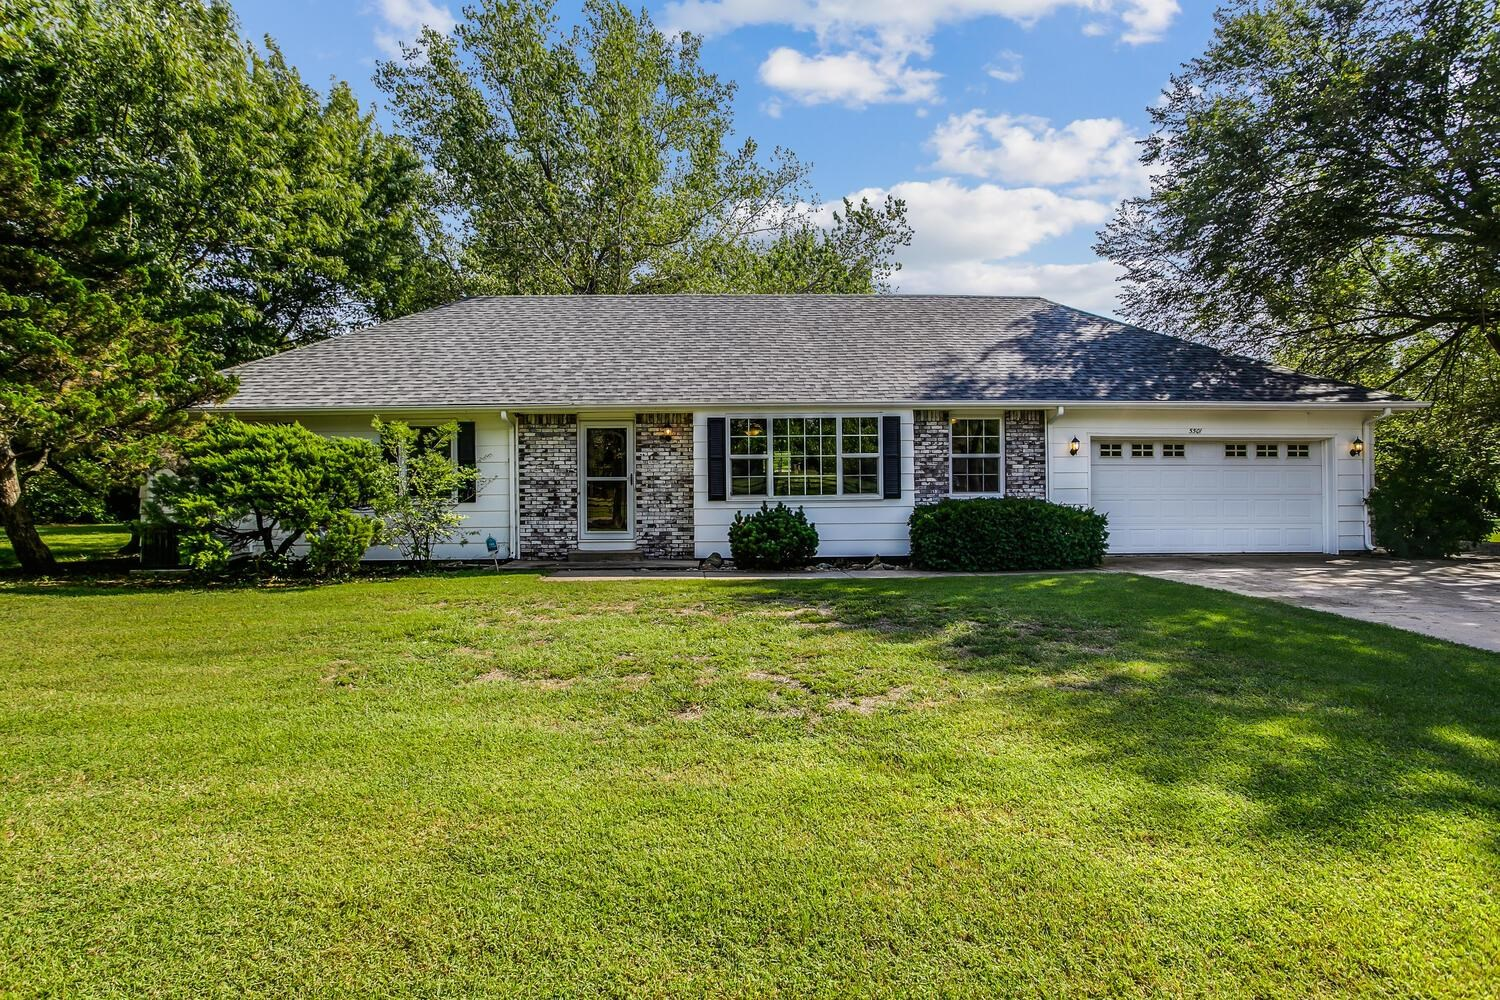 This wonderful and perfectly located home is a rare find! With the gorgeous backdrop of mature trees